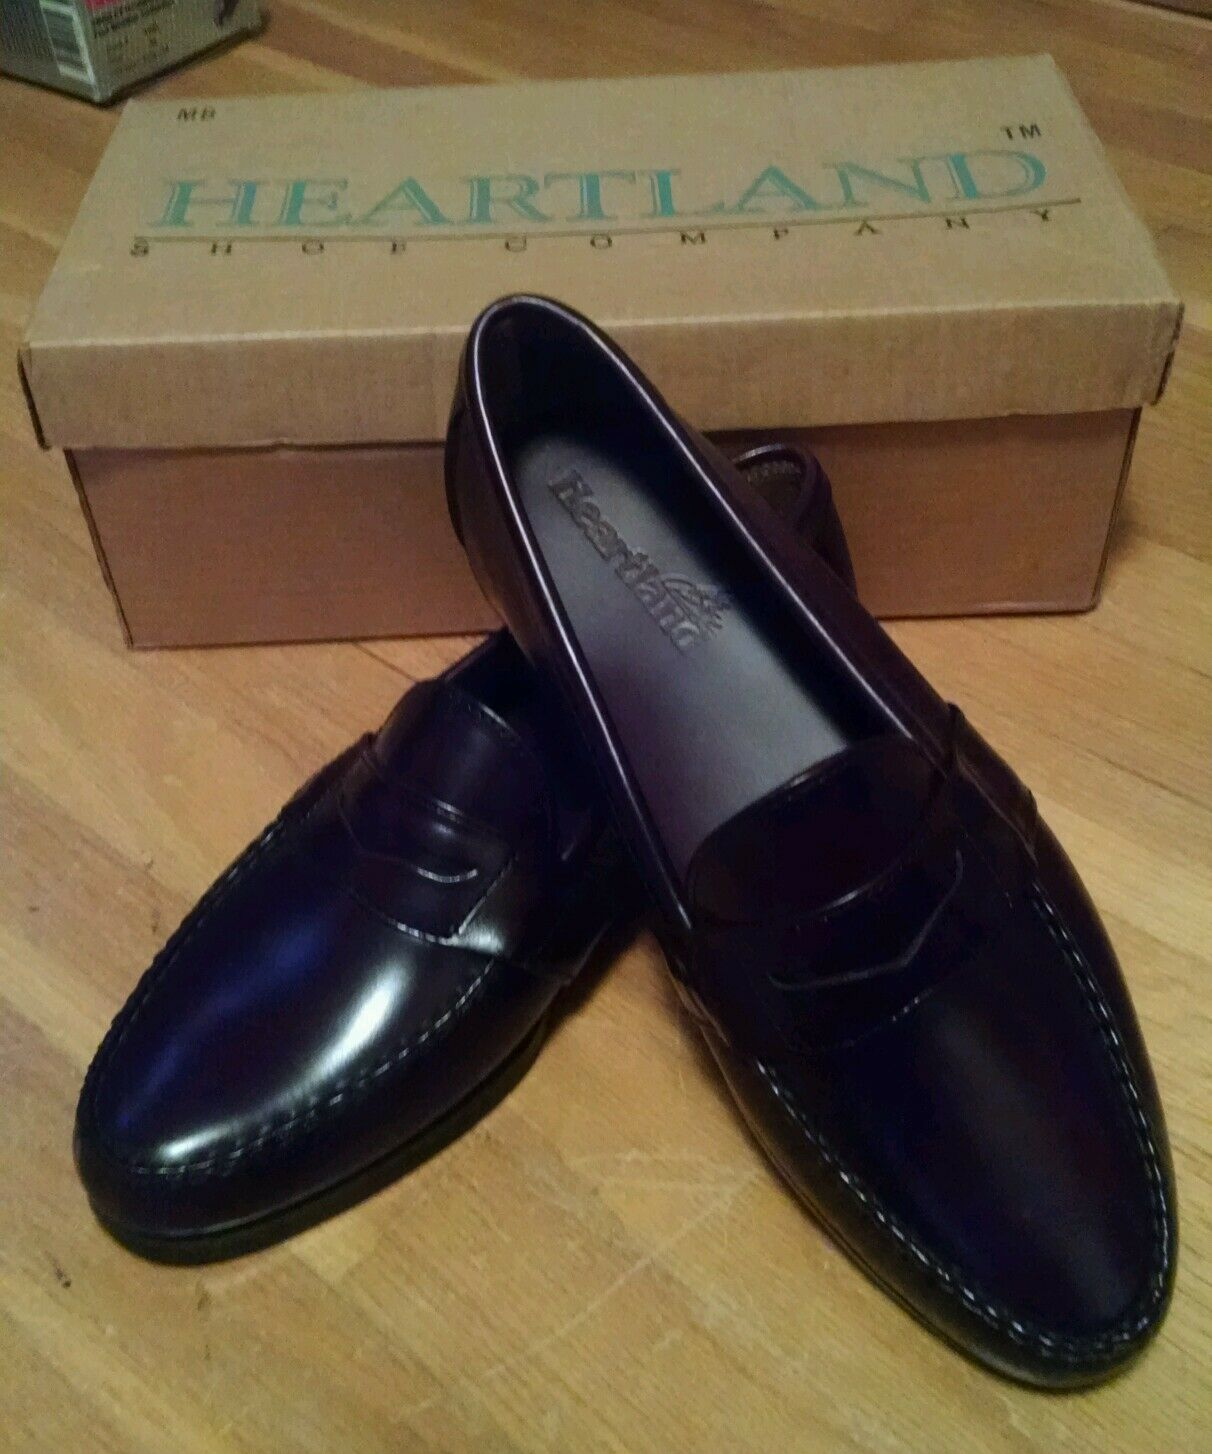 Full Strap Penny Loafers – Heartland – Men's Size 11 ½ M  NEW with BOX